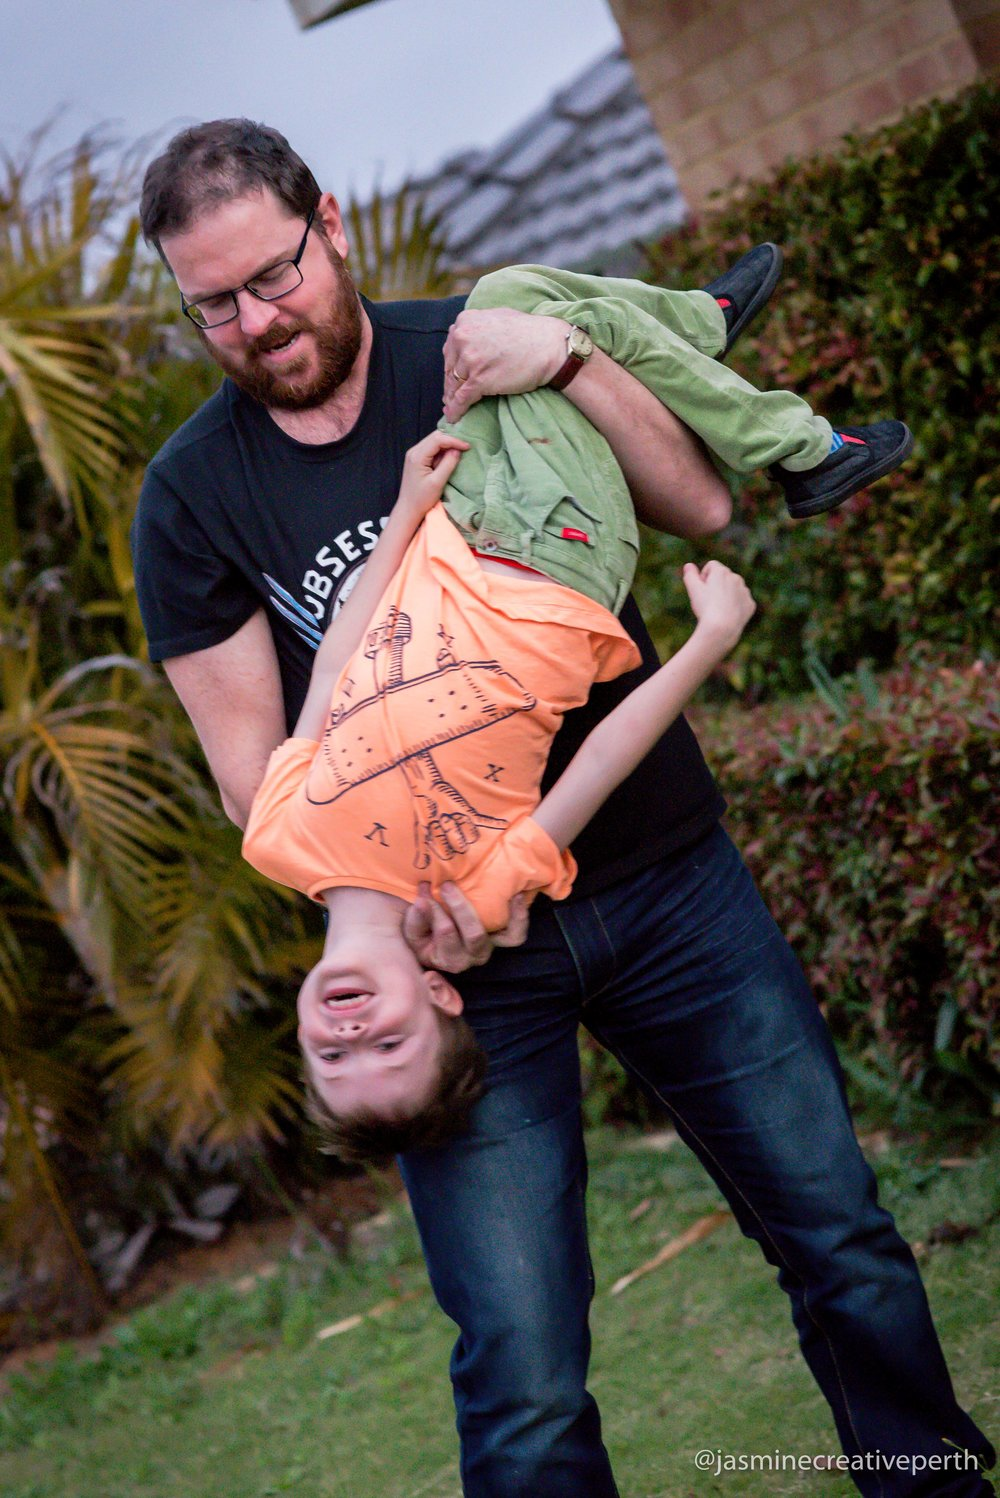 photgraphy photographer perth home child family photography perth (2 of 3).jpg